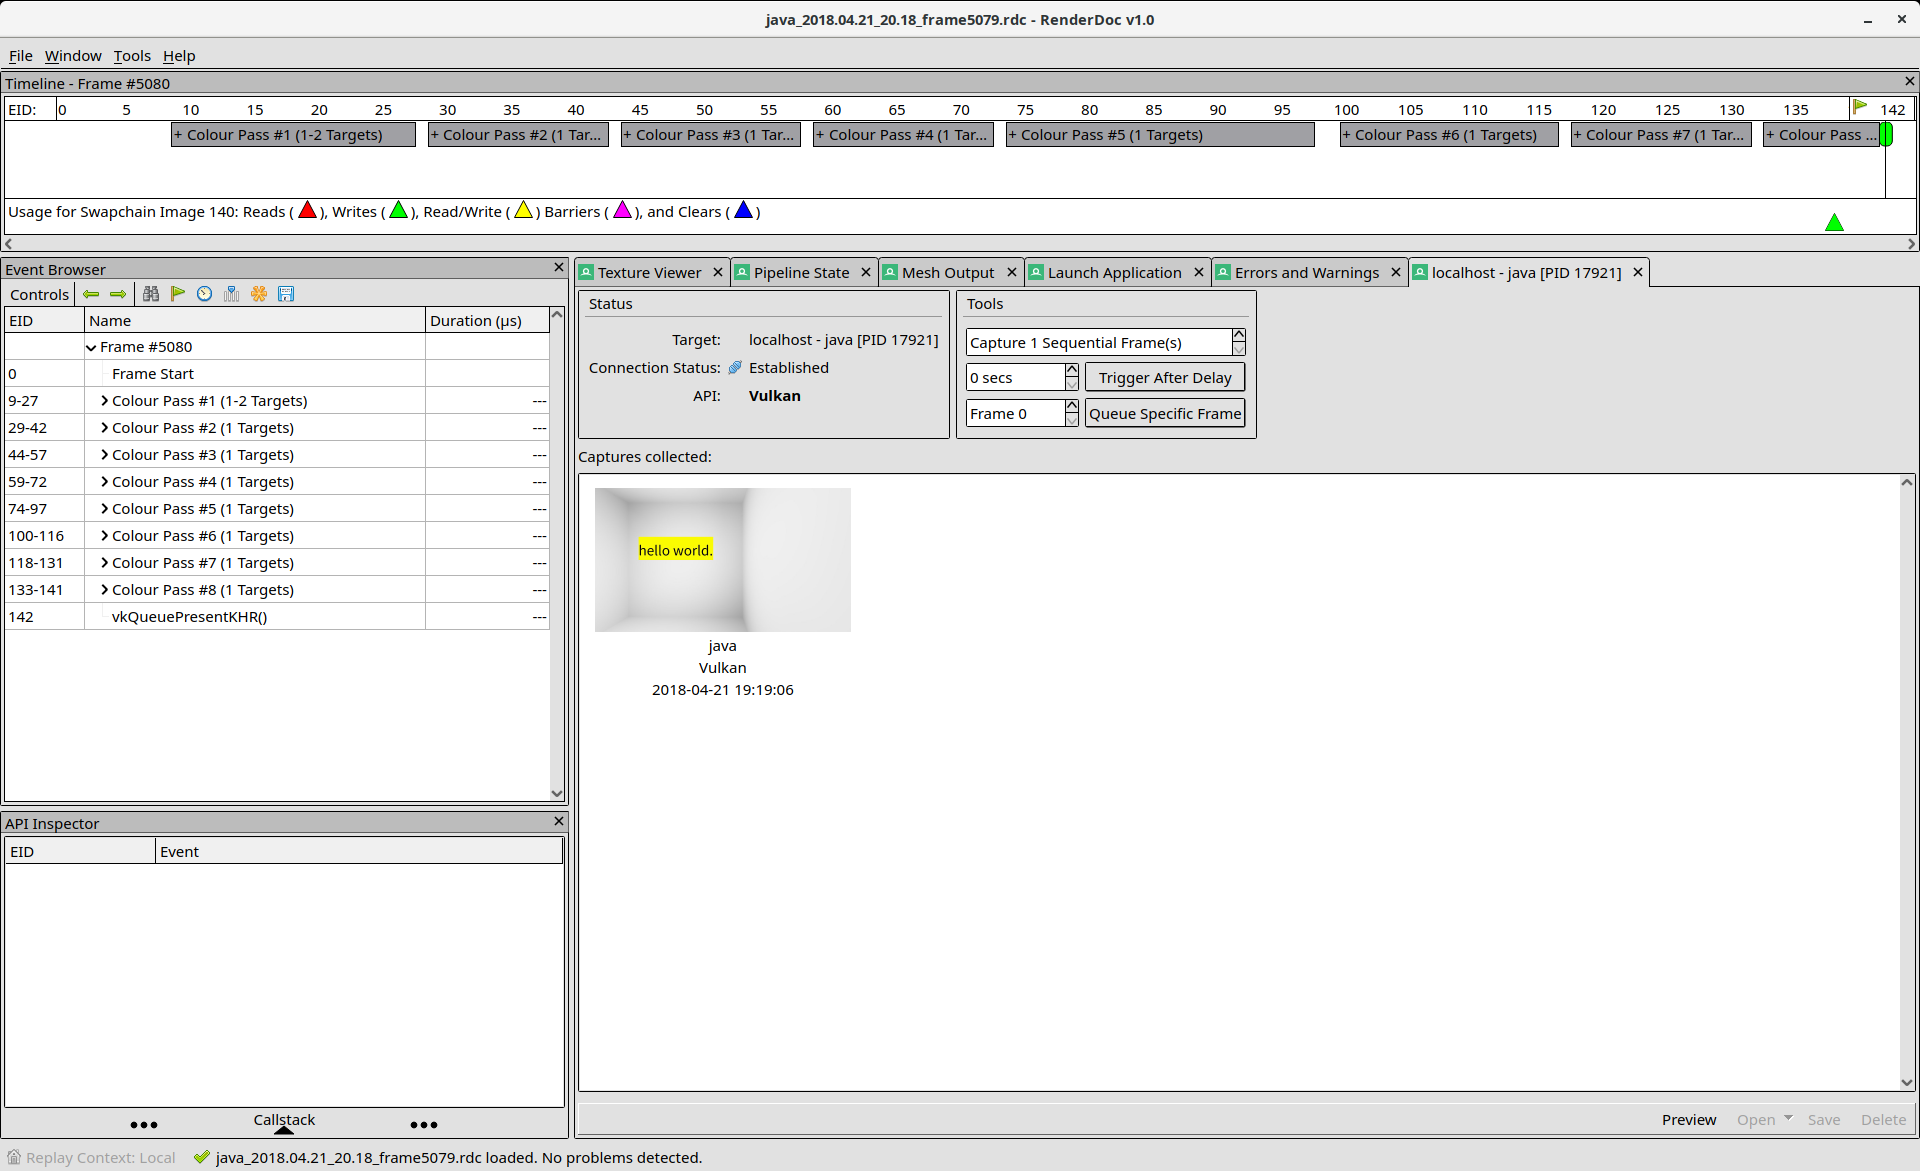 Screenshot of Renderdoc showing a frame capture